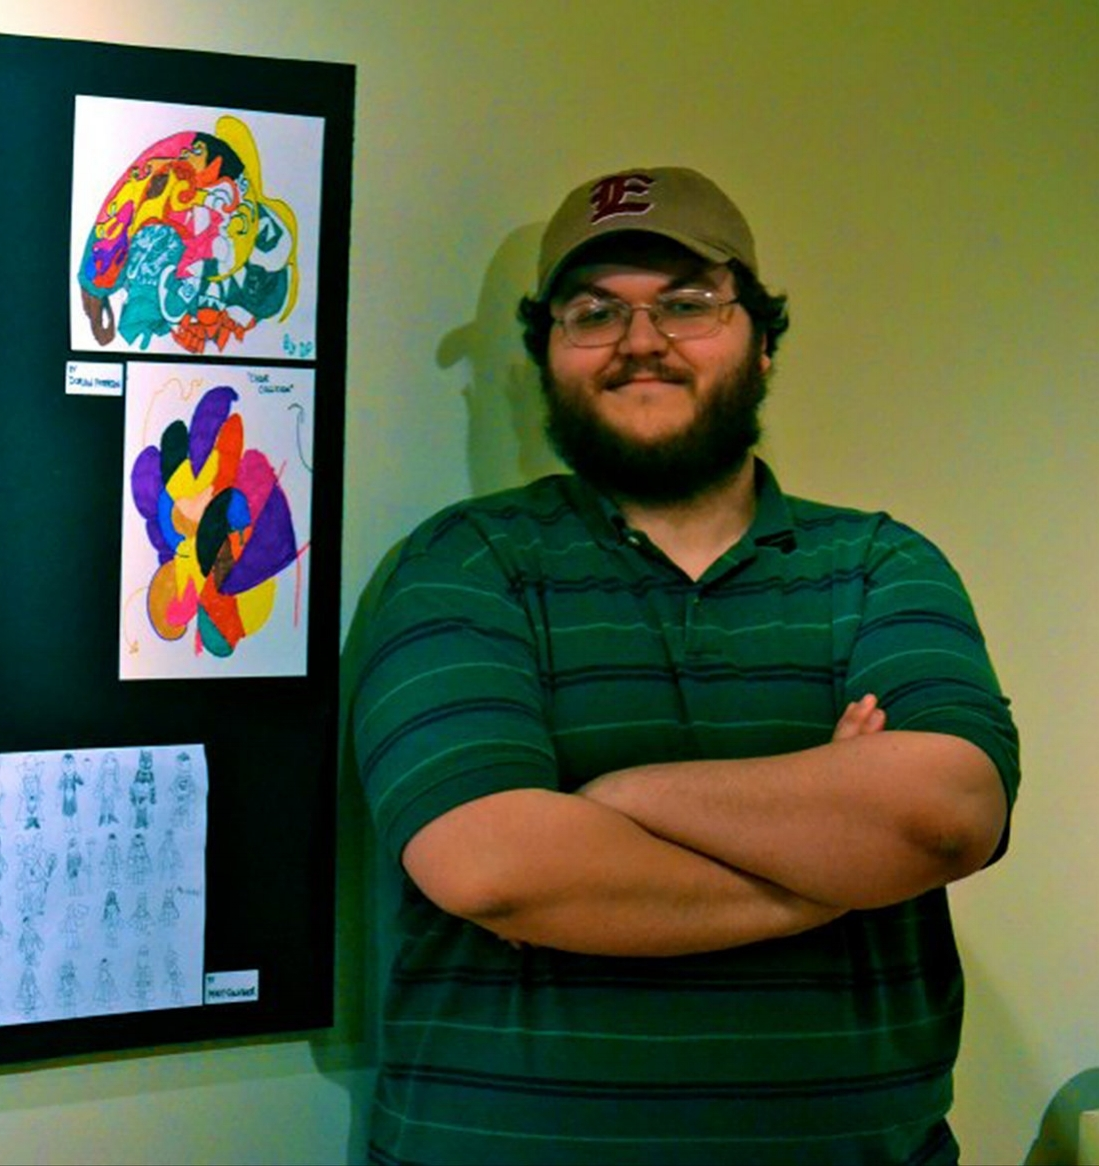 FRAC Gallery show about the artist display update - 11-12-16.jpg